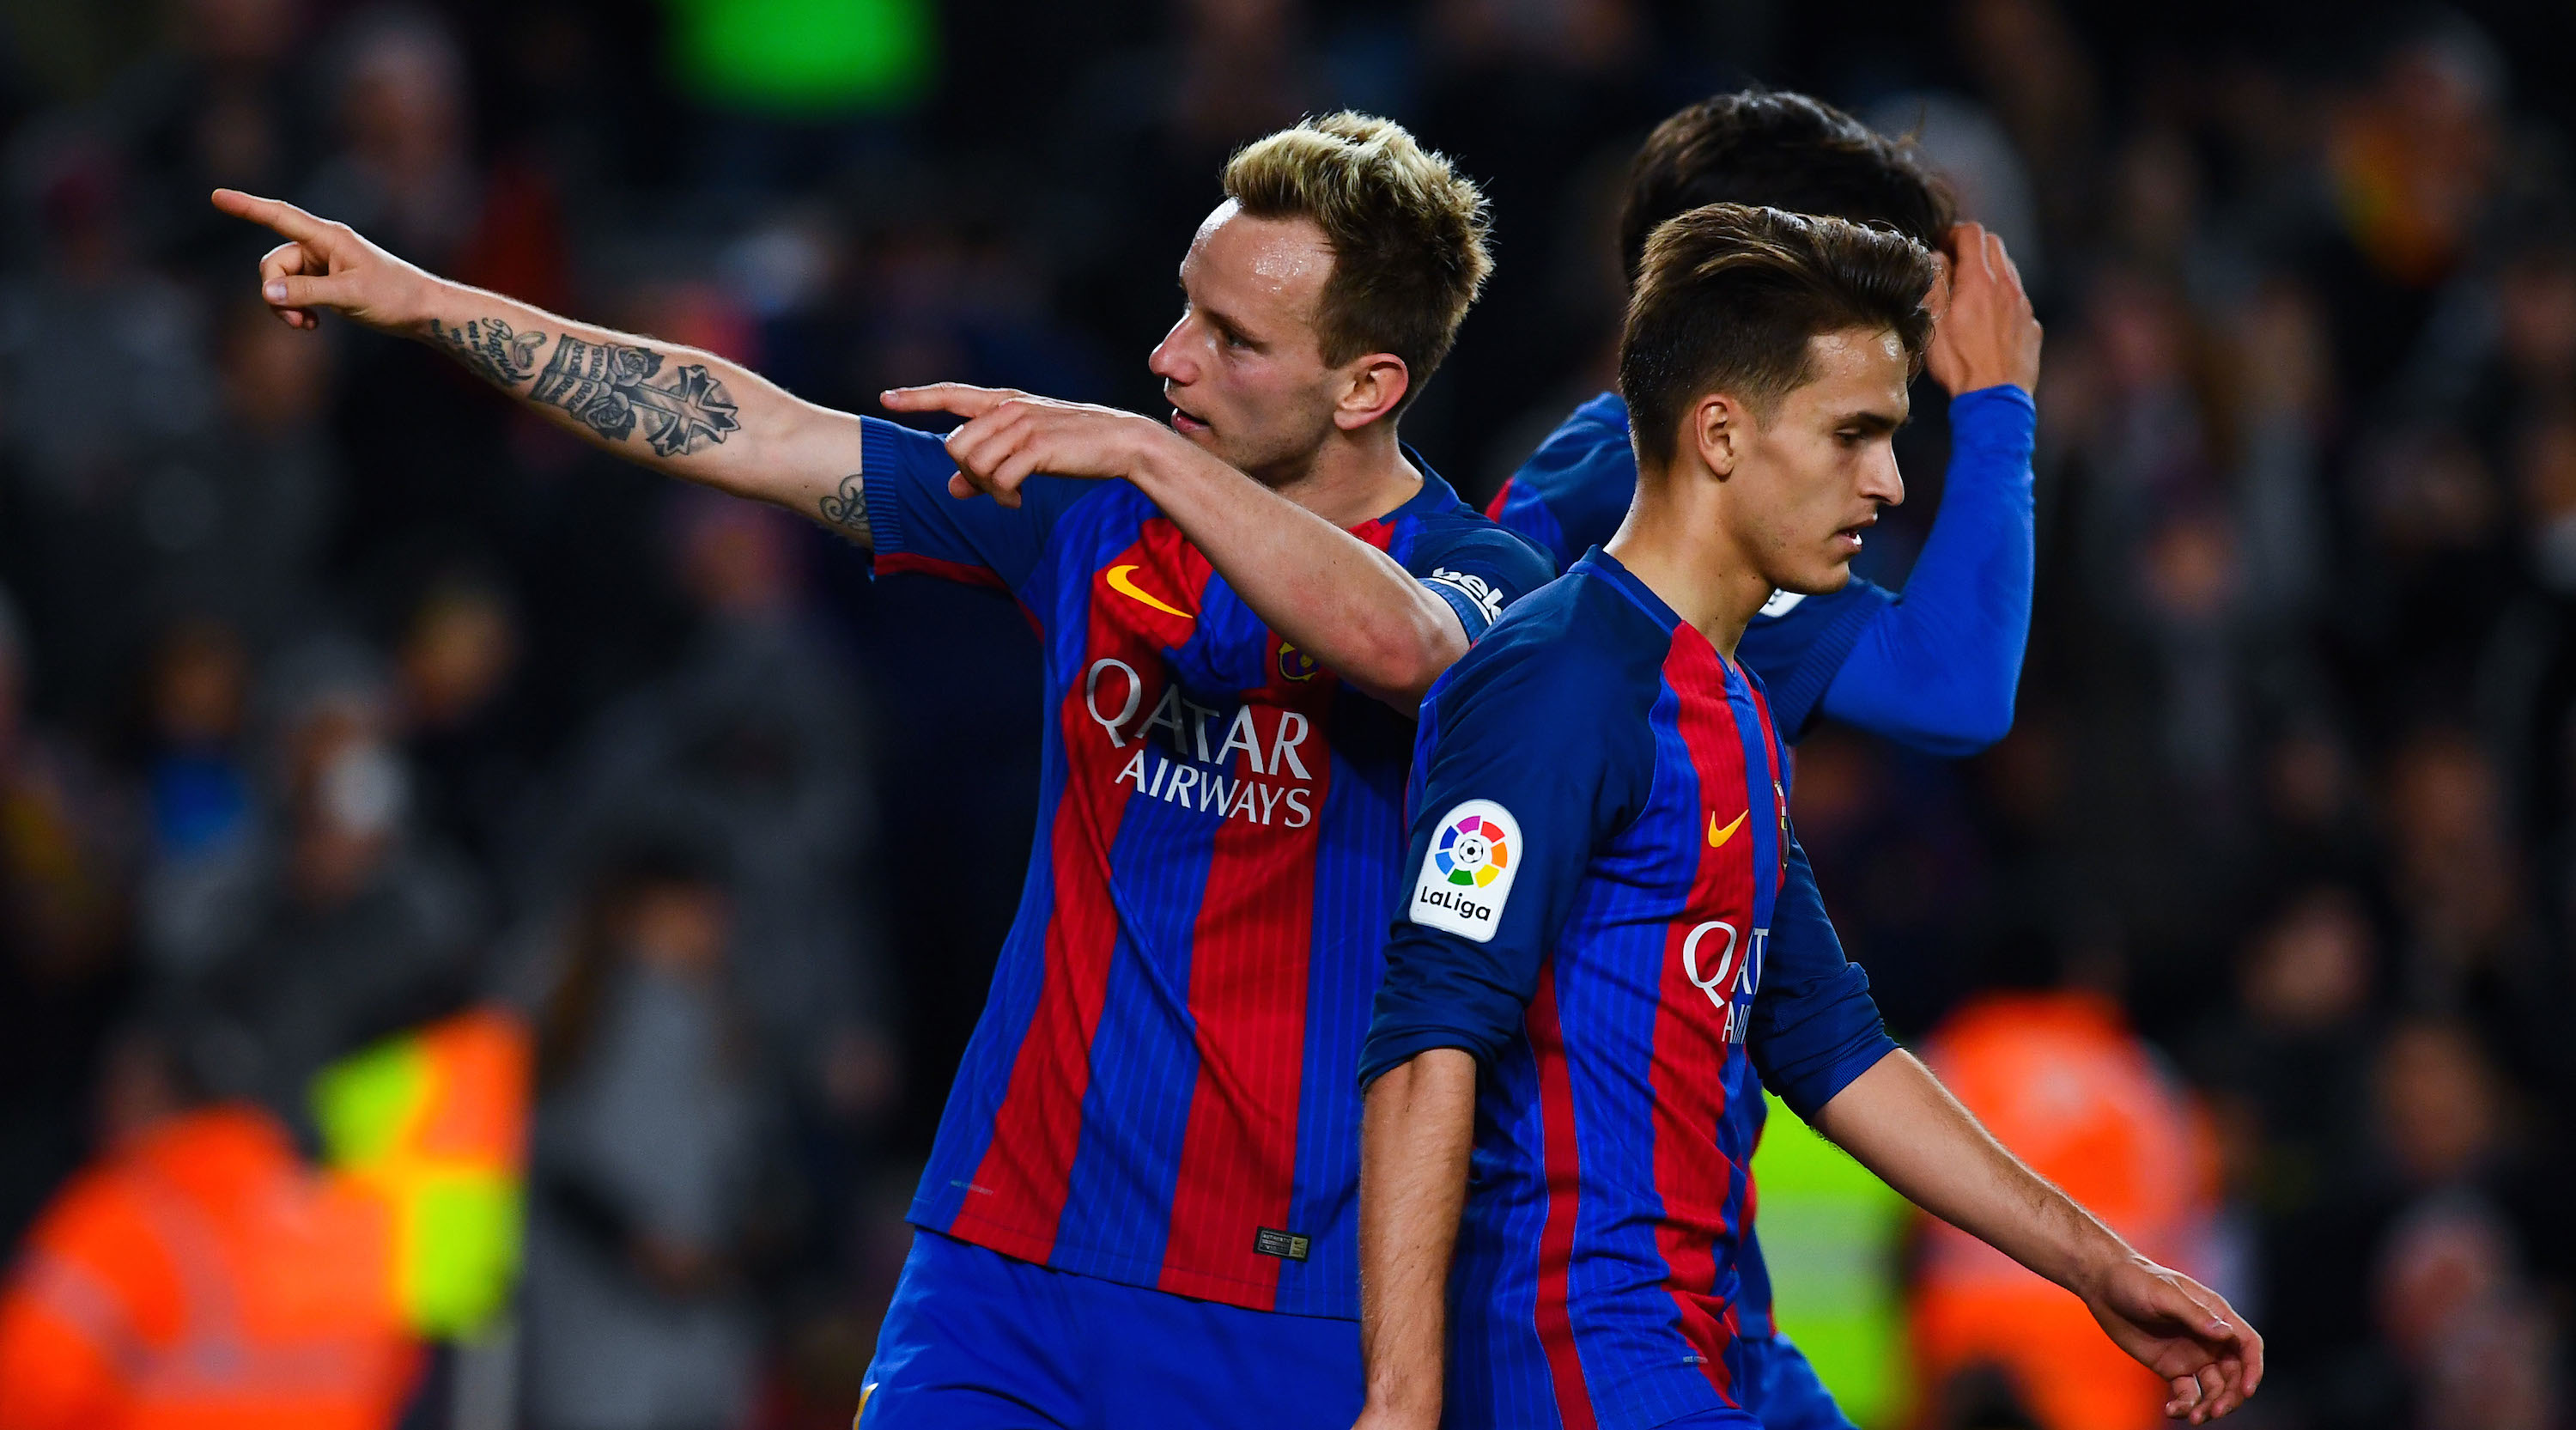 BARCELONA, SPAIN - MARCH 01: Ivan Rakitic (L) of FC Barcelona celebrates after scoring his team's sixth goal during the La Liga match between FC Barcelona and Real Sporting de Gijon at Camp Nou stadium on March 1, 2017 in Barcelona, Spain. (Photo by David Ramos/Getty Images)